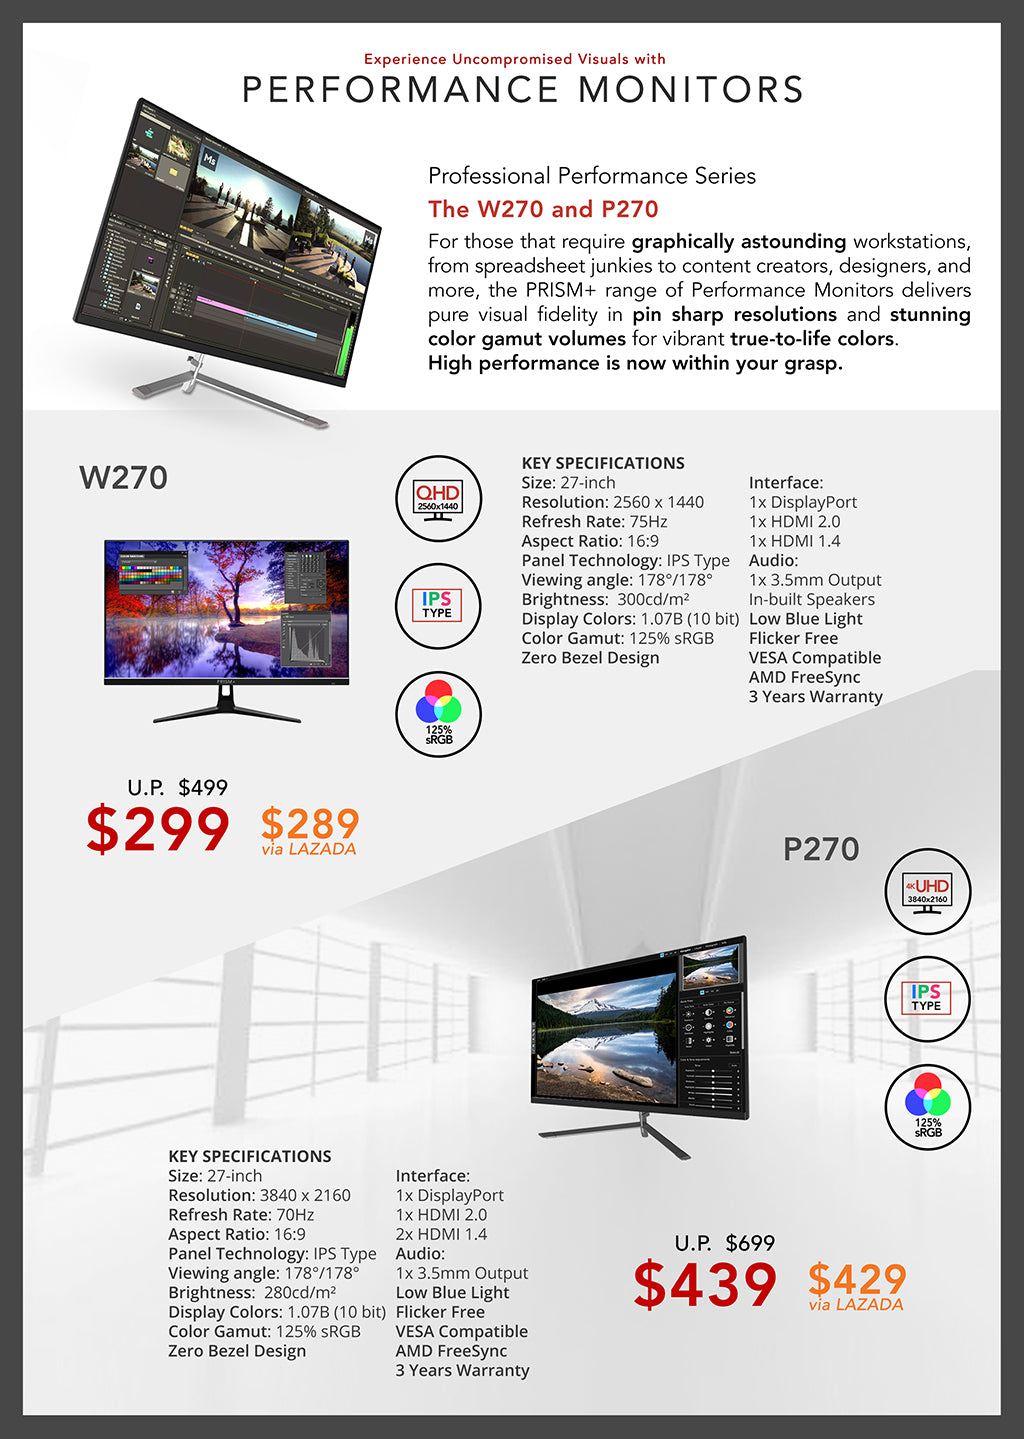 PC Show 2019 Brochure Page 5 (Performance Monitors)